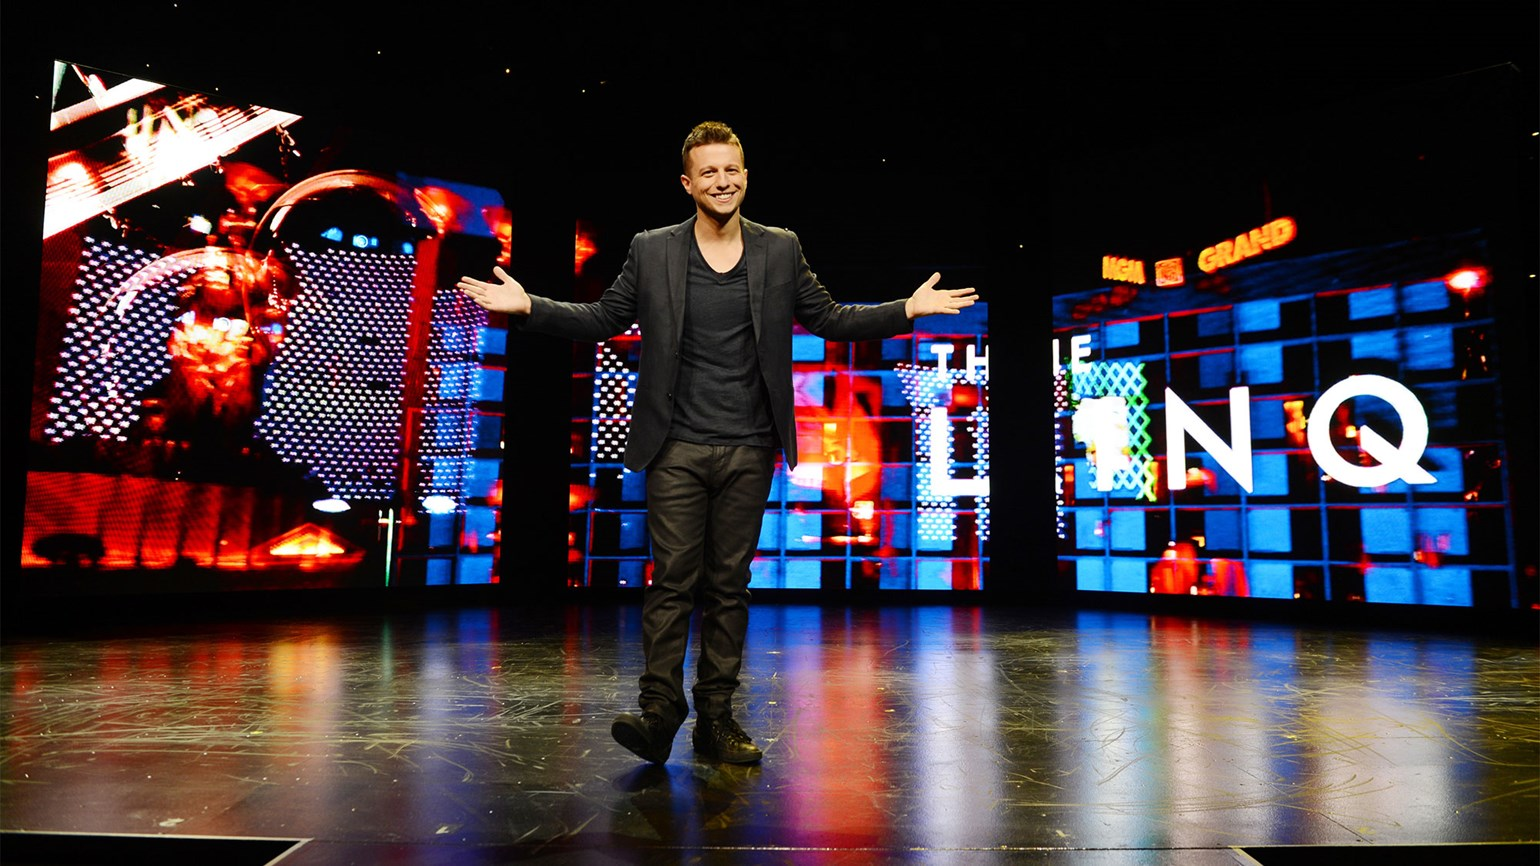 Magician Mat Franco reappears at the Linq